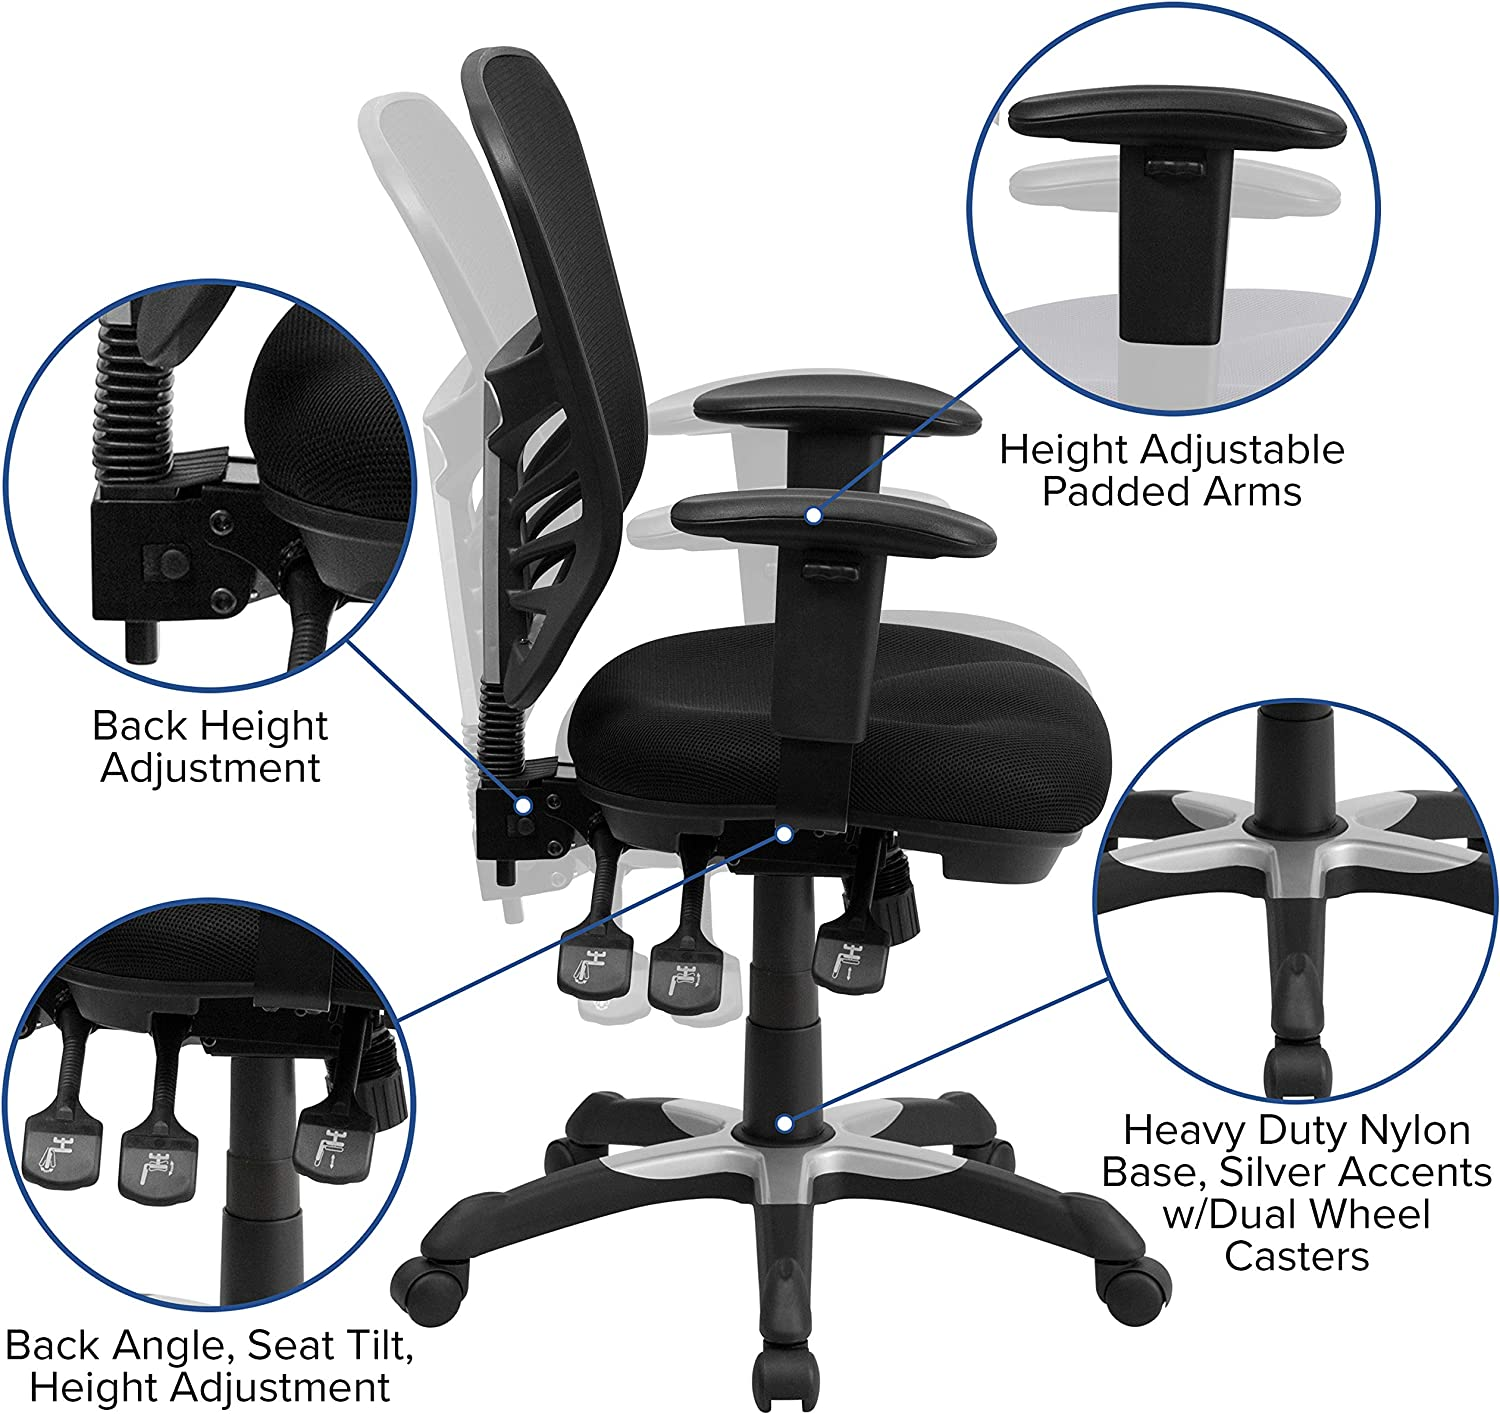 81KDGlTO3LL. AC SL1500 - What Are The Best Chairs For Back Pain At Home - ChairPicks